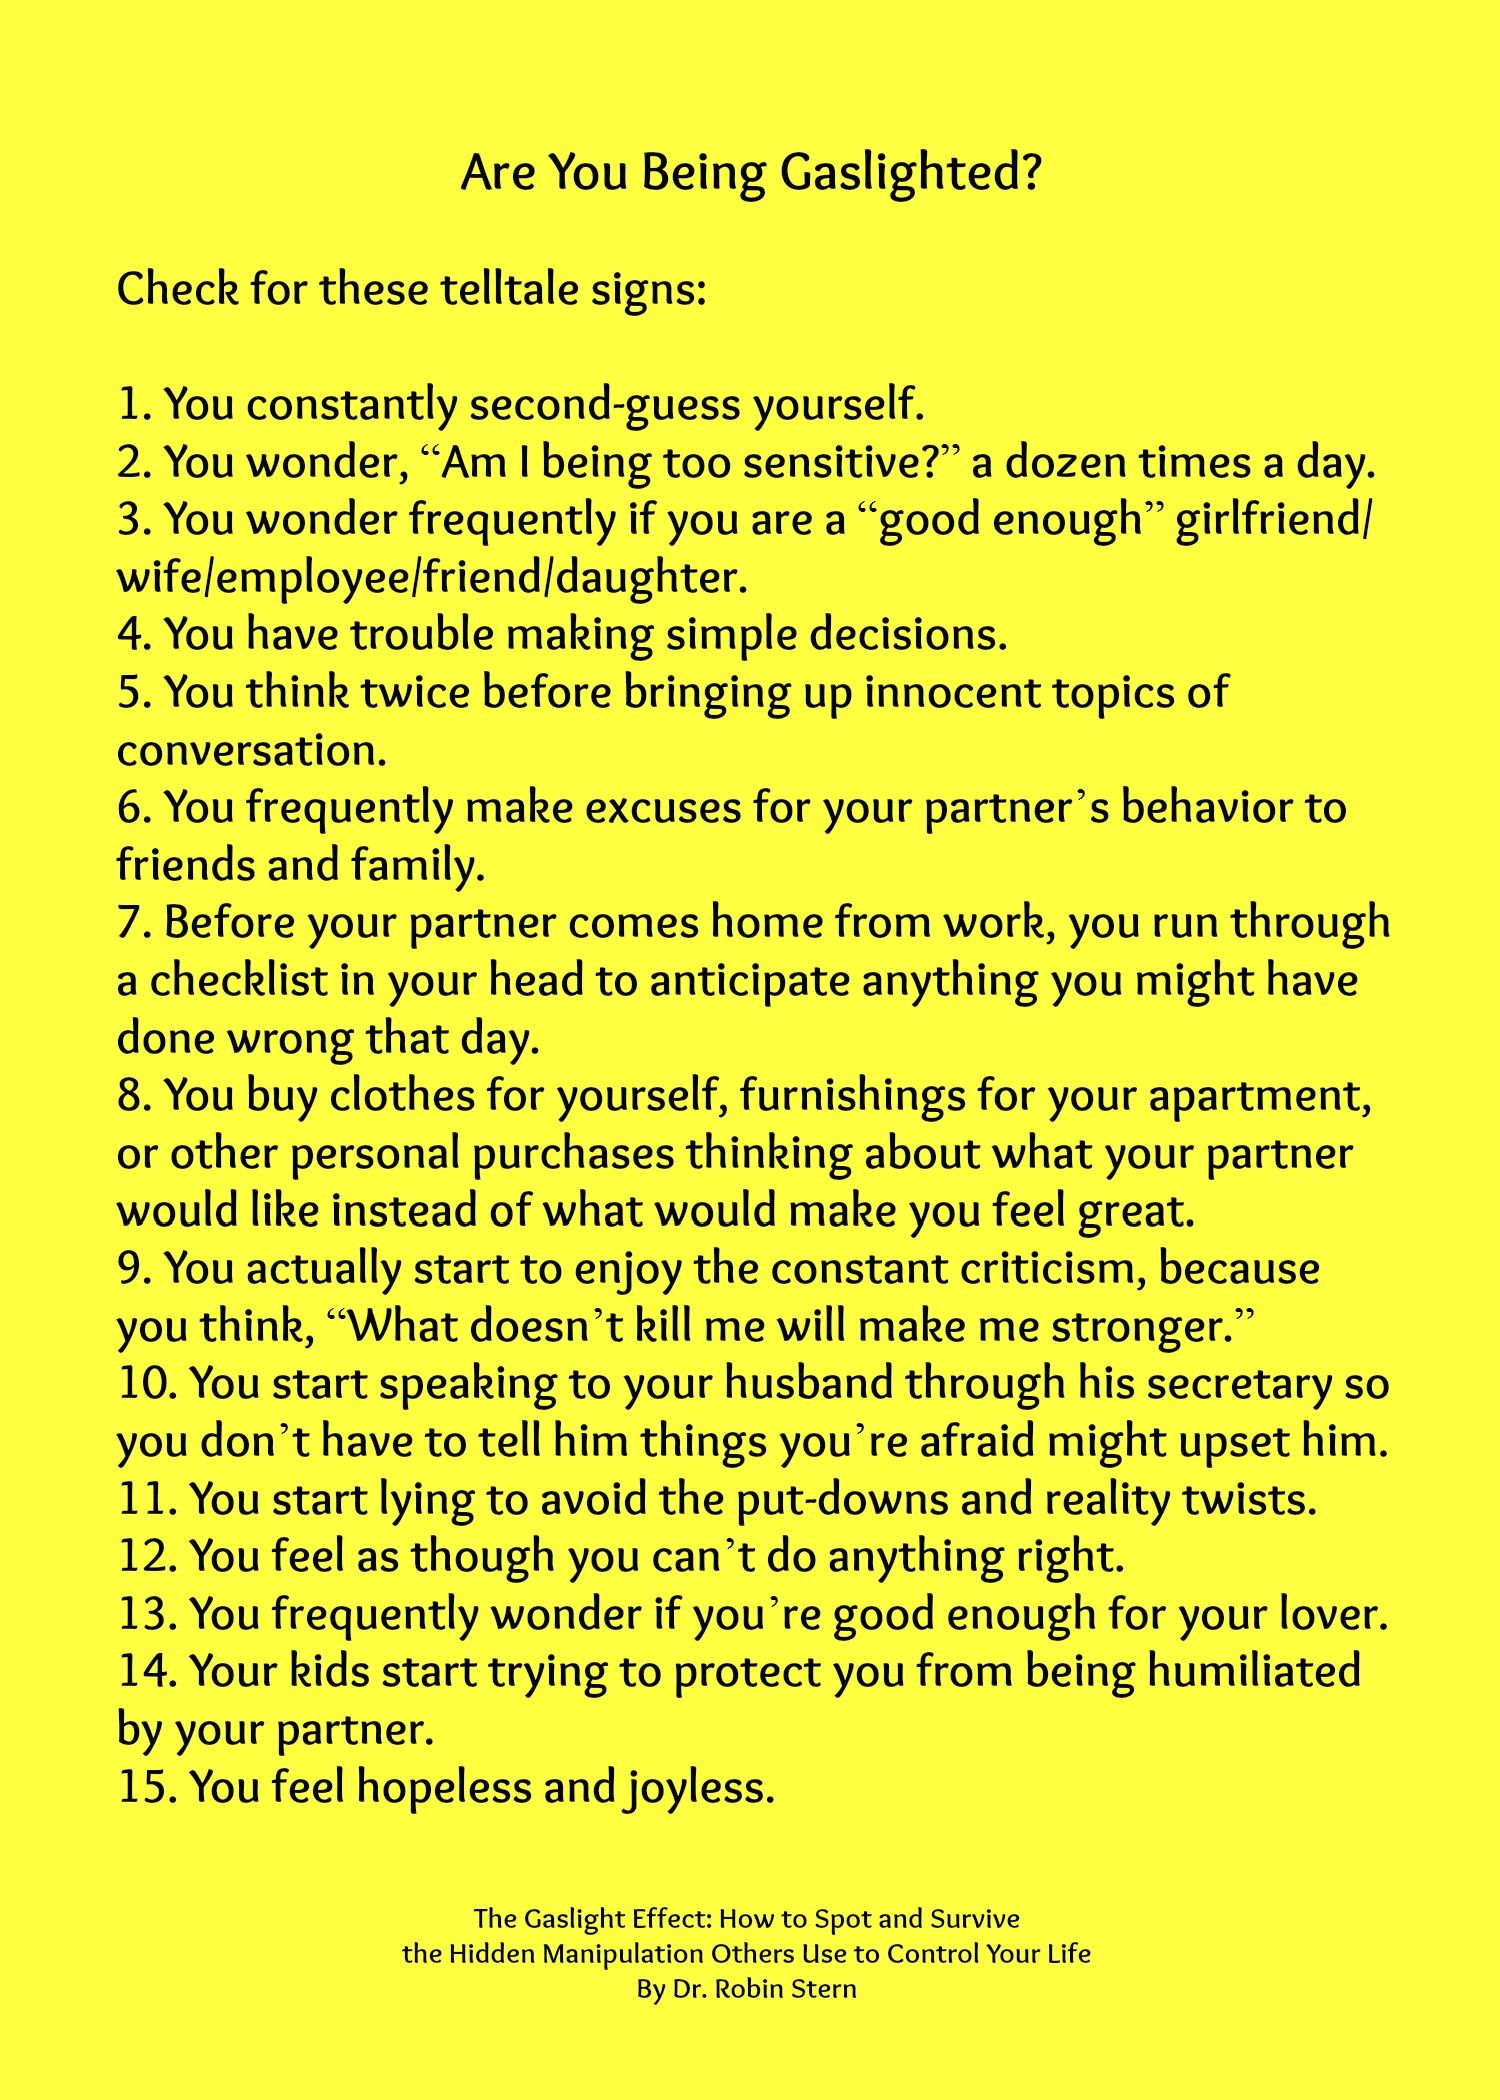 10 signs dating narcissist